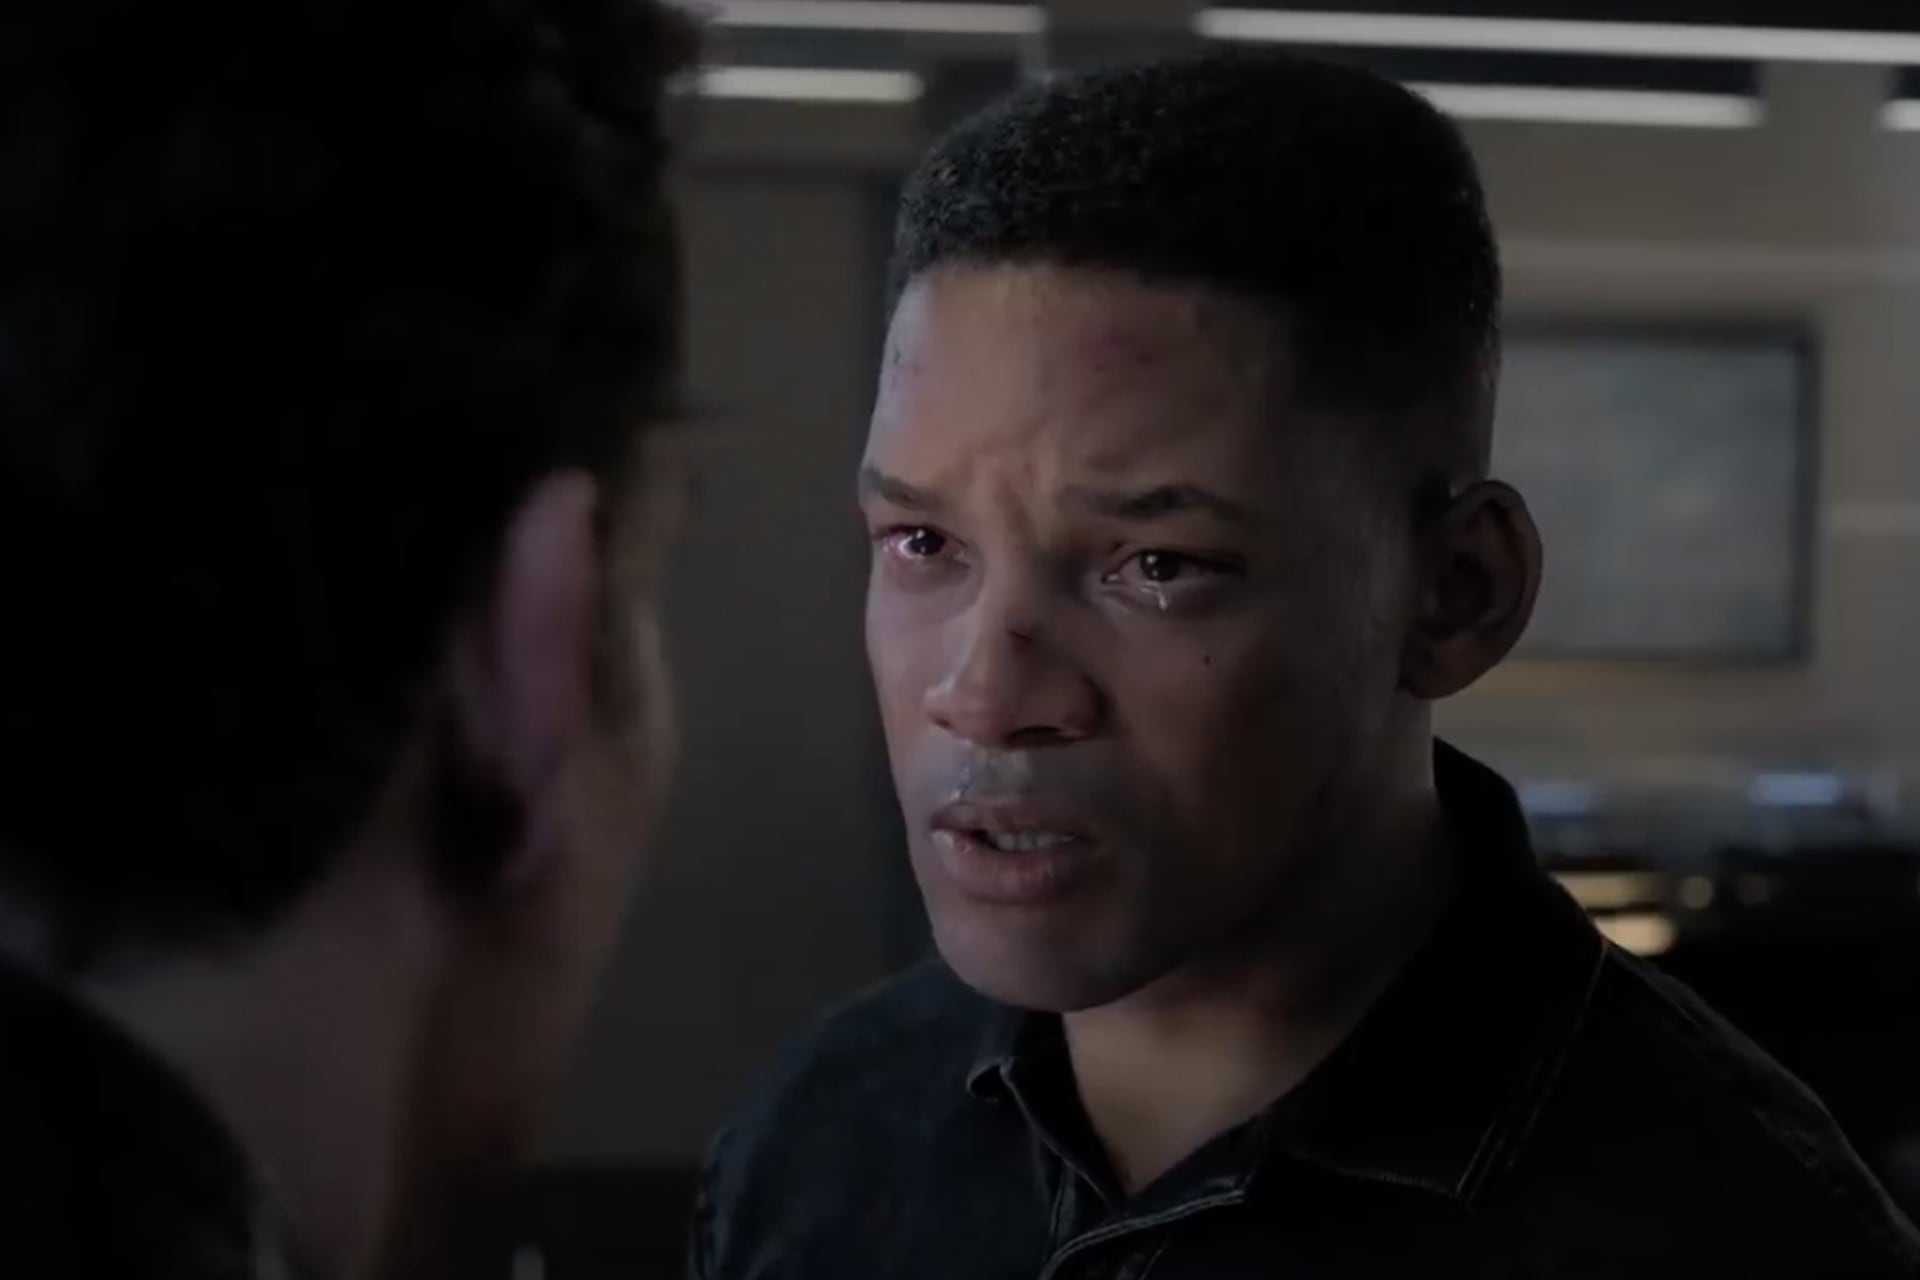 The Trailer For Gemini Man Confirms That Will Smith Hasn't Aged Since The Fresh Prince